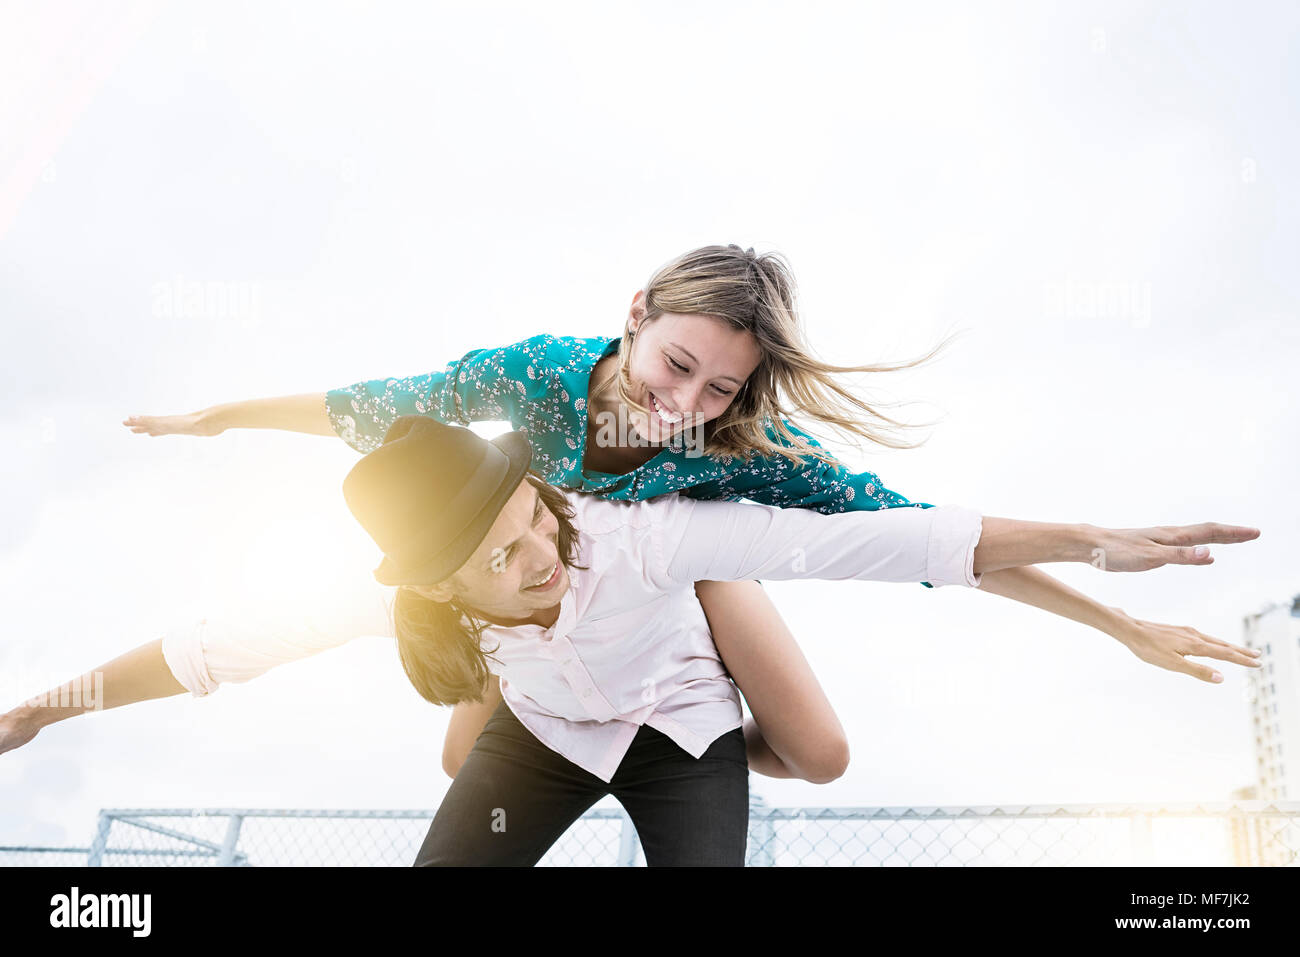 Young affectionate couple having fun together on rooftop, pretending to fly - Stock Image